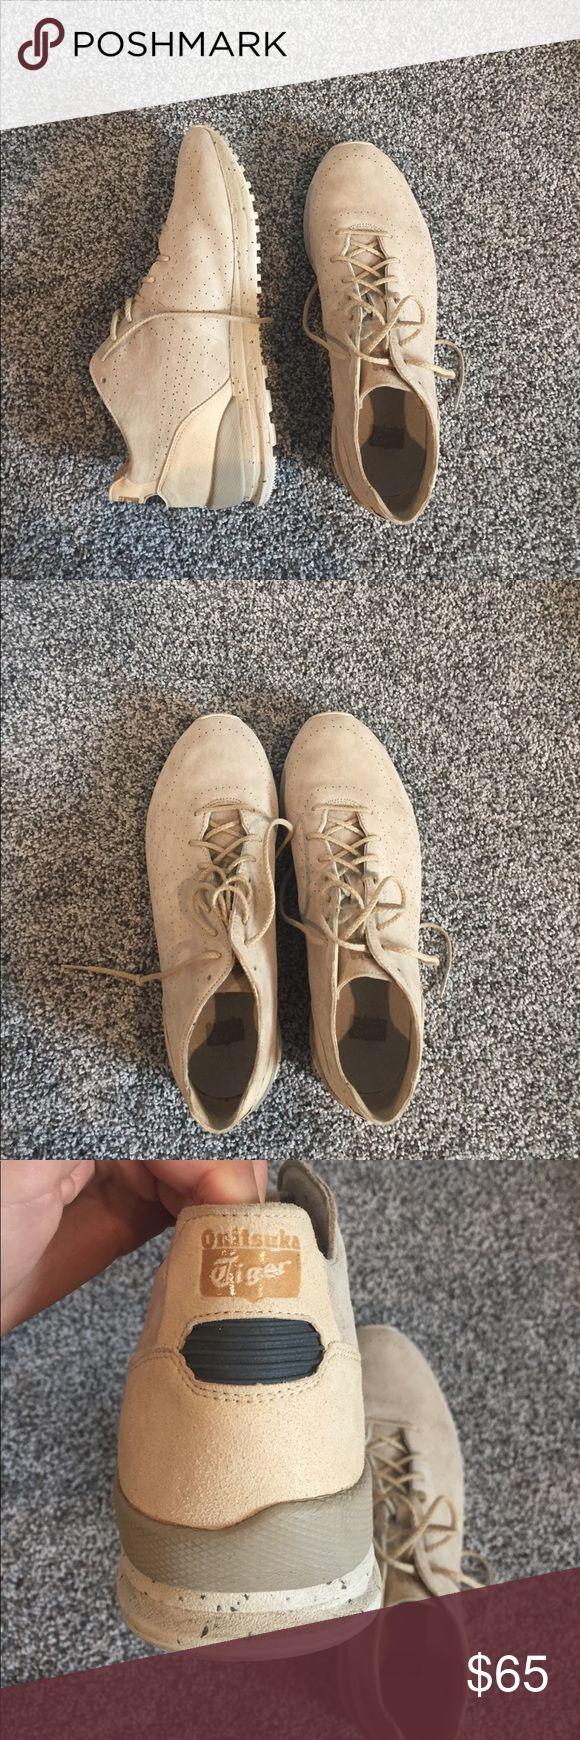 Tan suede sneakers Purchased from urban outfitters. So cute and look similar to yeezys but they are just too big for me. I wore them once. Onitsuka Tiger Shoes Sneakers